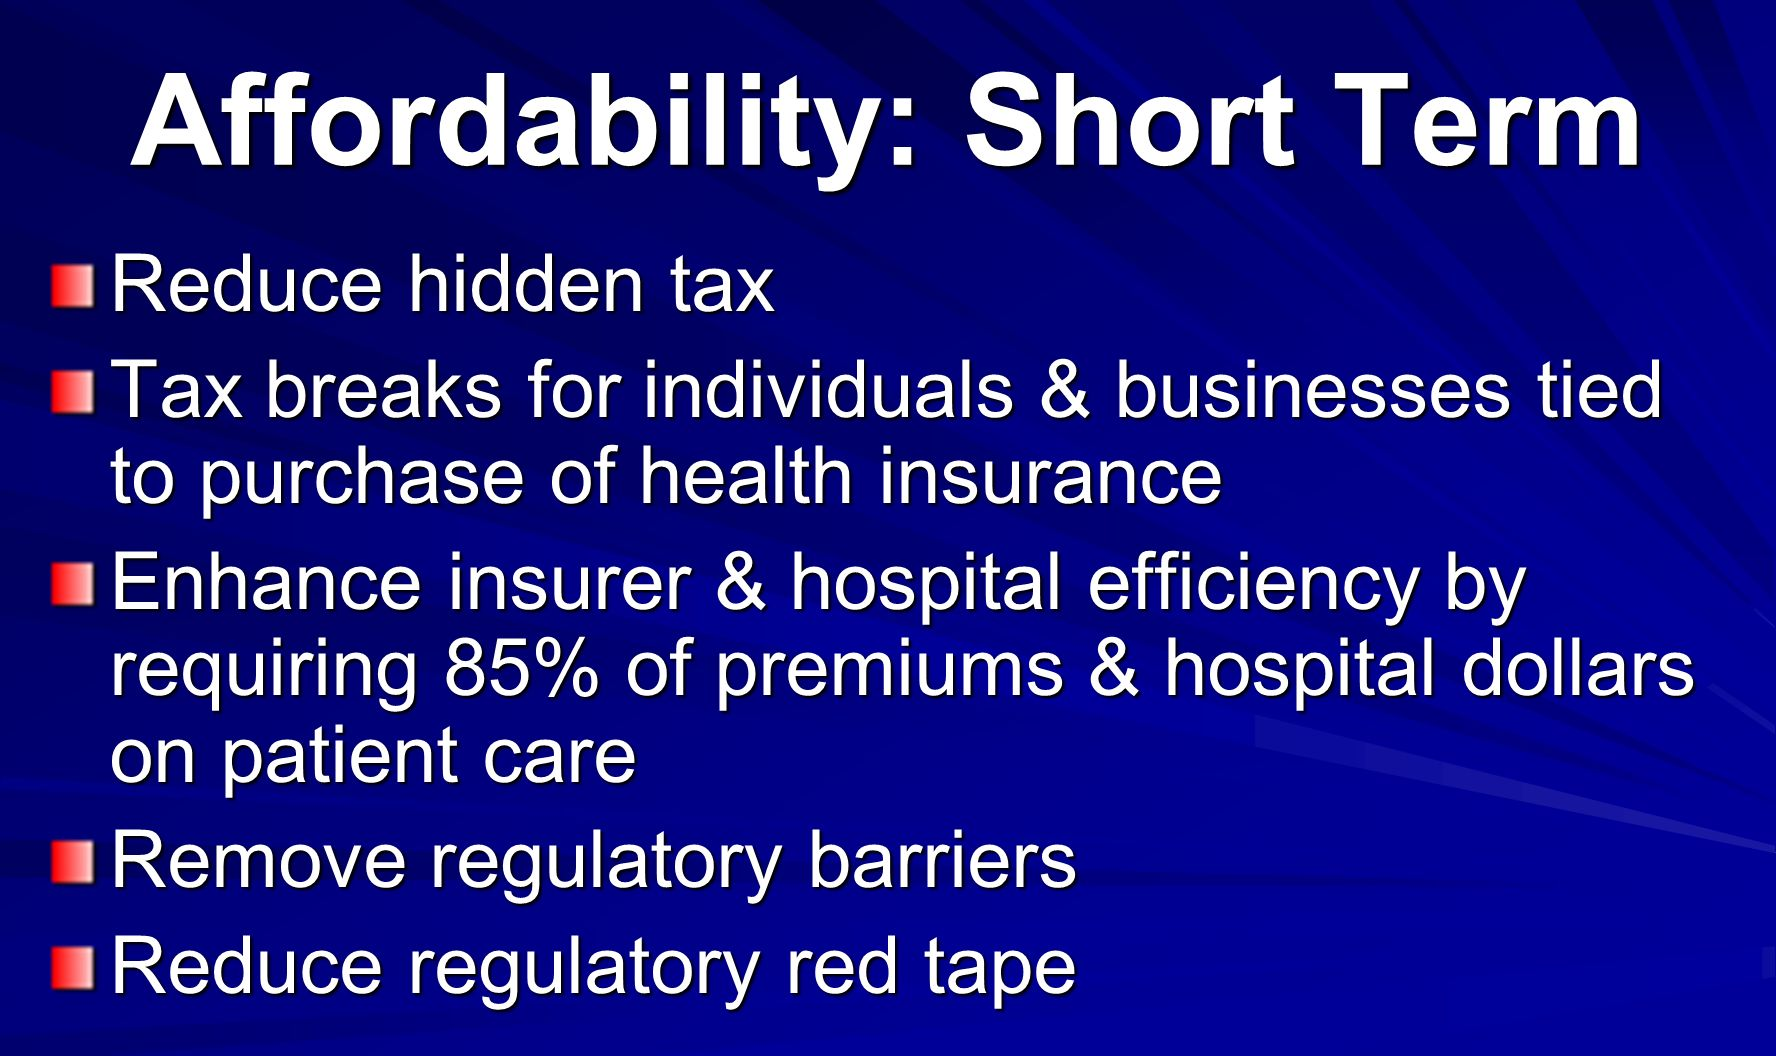 Affordability: Short Term Reduce hidden tax Tax breaks for individuals & businesses tied to purchase of health insurance Enhance insurer & hospital ef